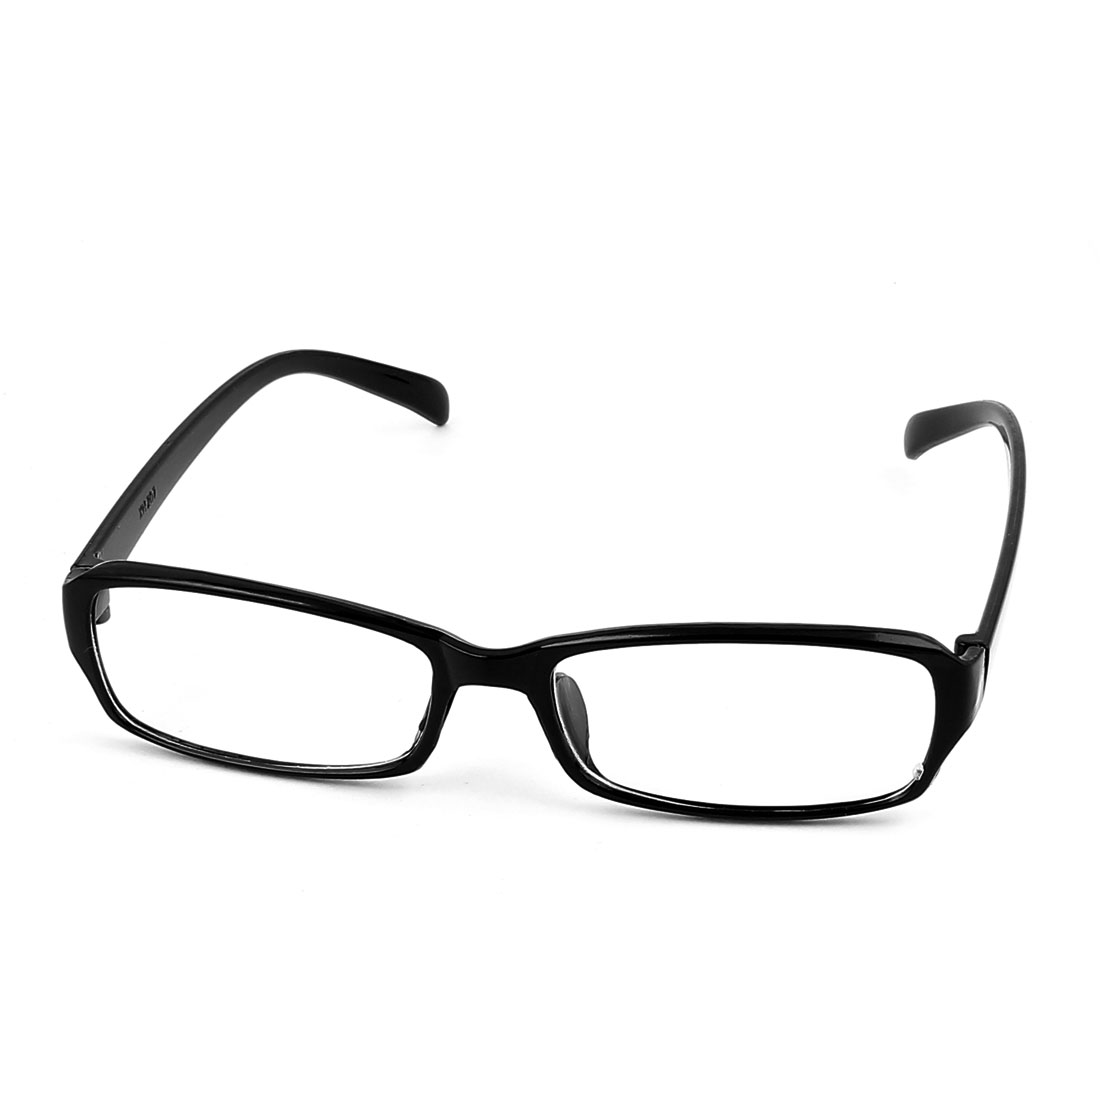 Clear Rectangle Lens Full Frame Eyewear Plain Plano Glasses Spectacles Black